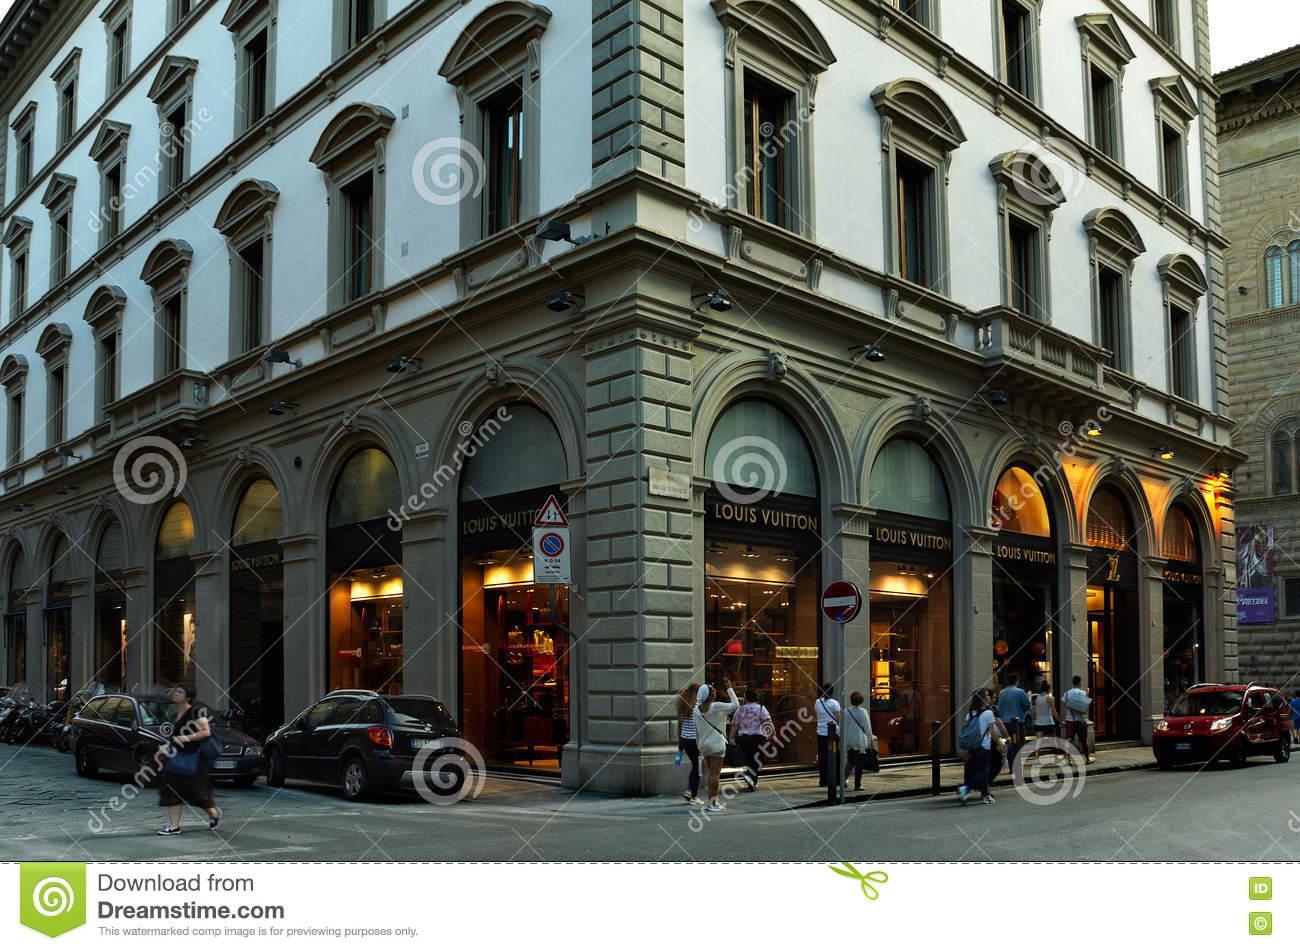 FLORENCE, ITALY - JUly ,02: Louis Vuitton store in Florence, one of the most luxurious shopping district in the world0